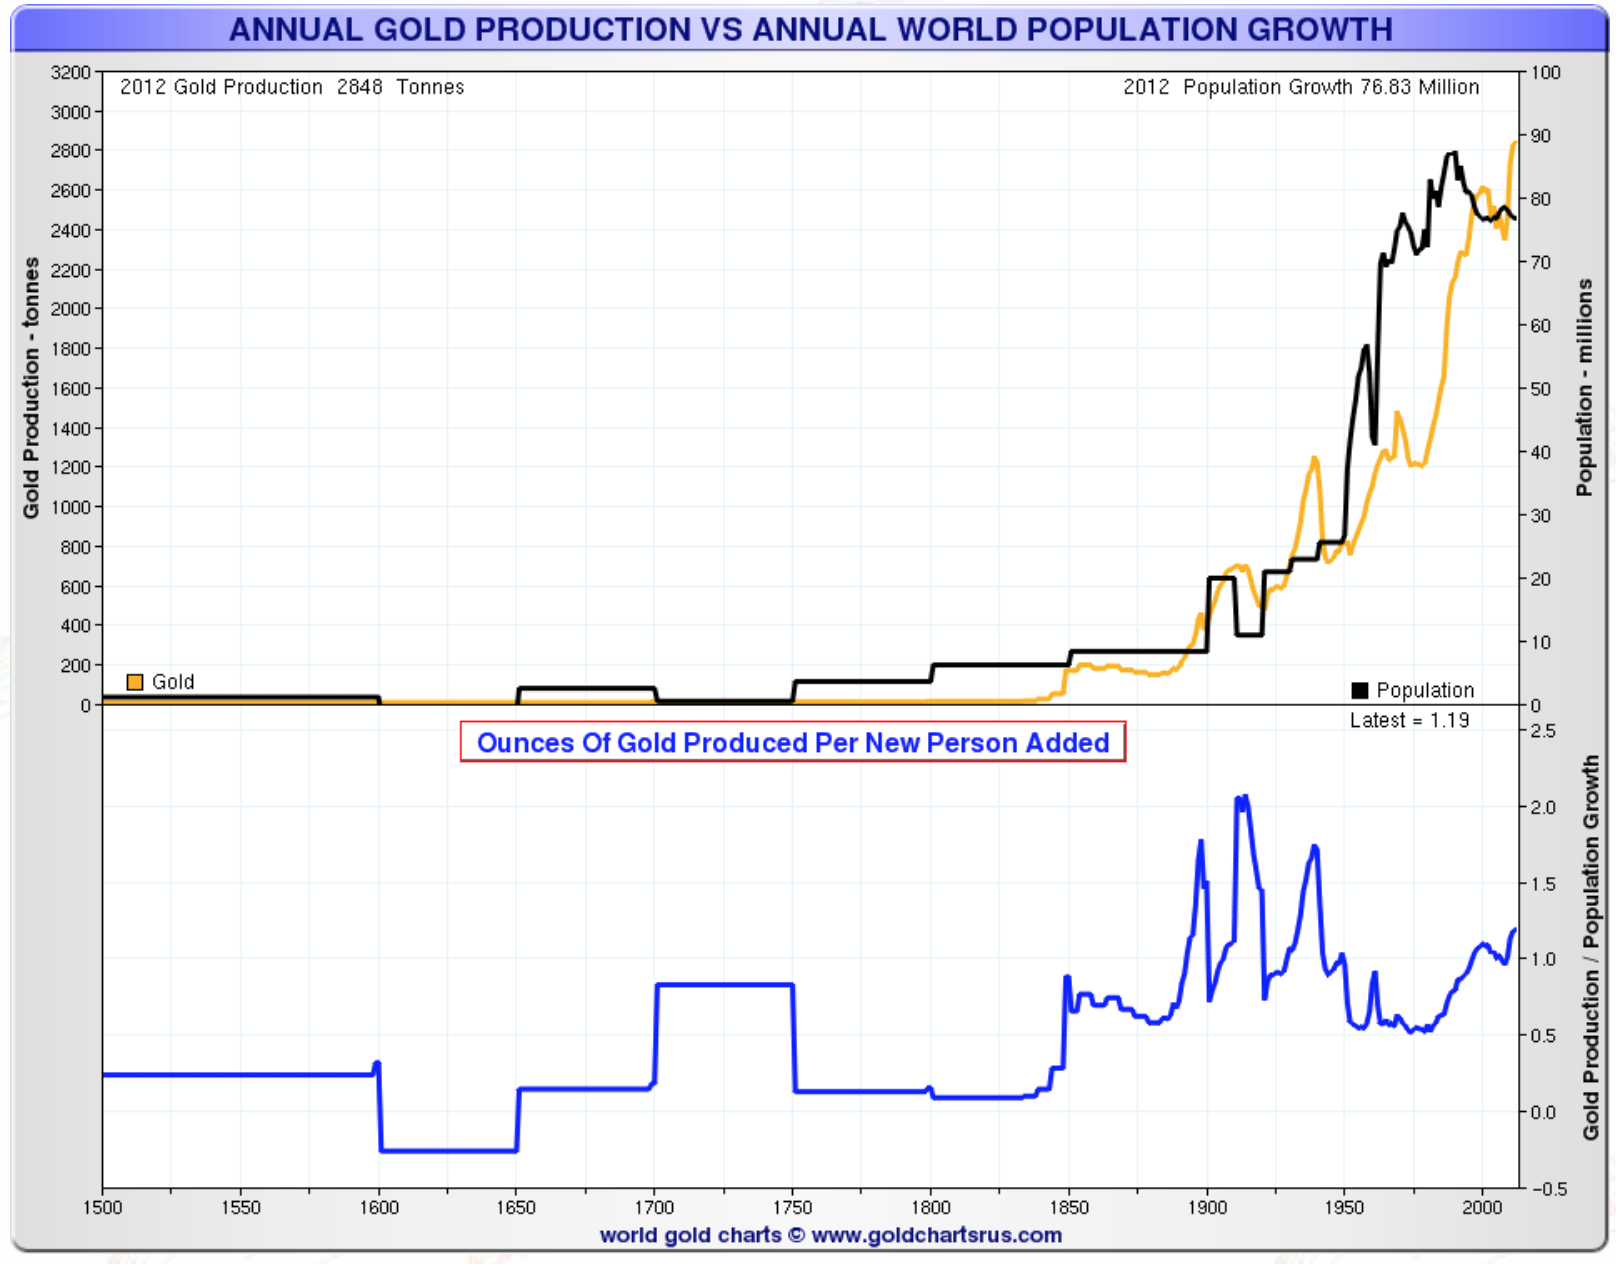 Annual gold production vs world population growth